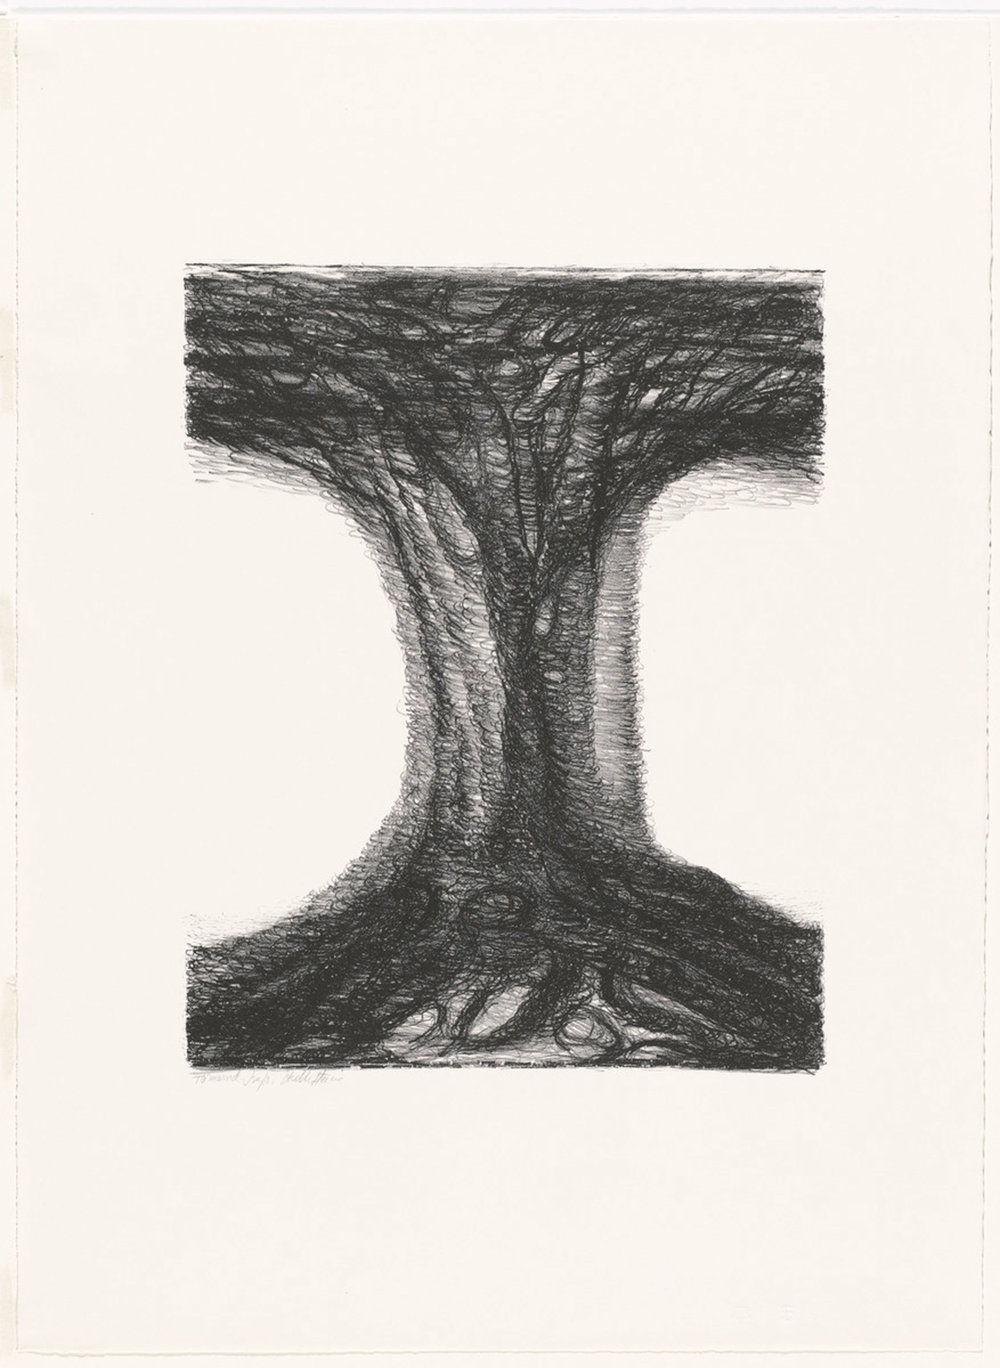 Hedda Sterne, Untitled, 1967, Lithograph (edition of 15), 29 in. x 21 in.